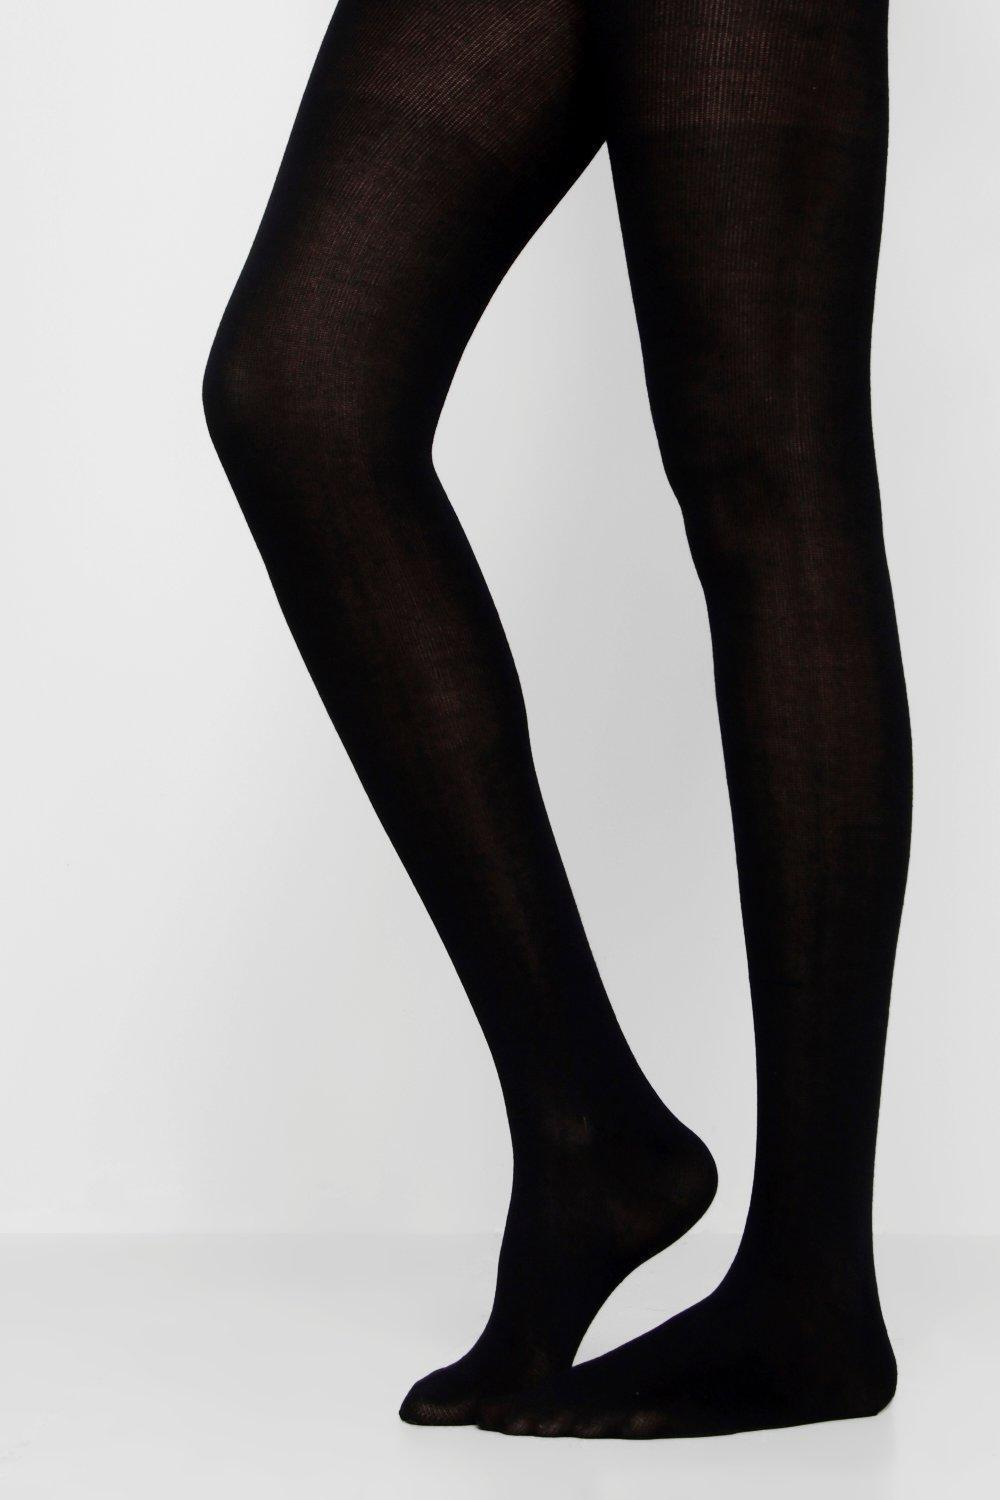 711f71ec0151f Gallery. Previously sold at: Boohoo · Women's Black Tights ...